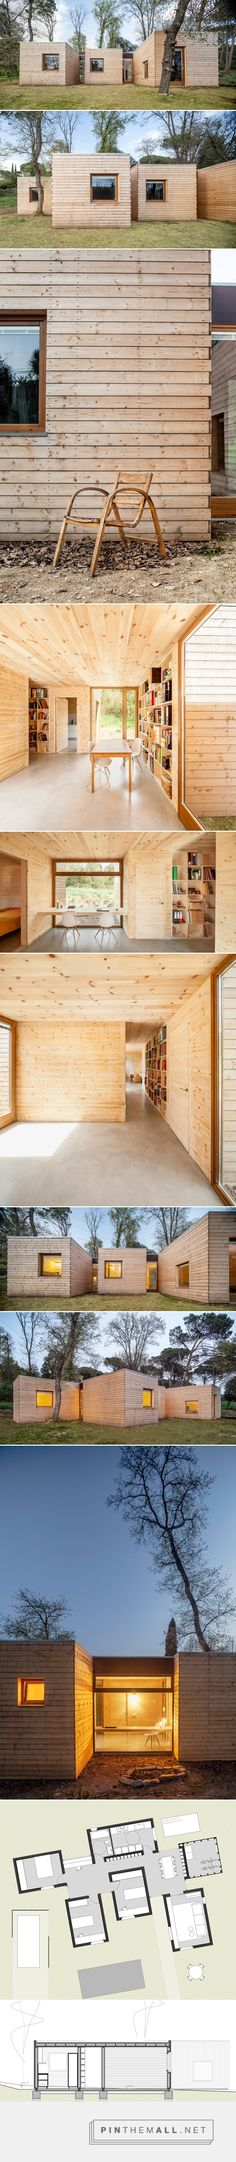 Casa GG by Alventosa Morell Arquitectes comprises timber-clad volumes - created via http://pinthemall.net